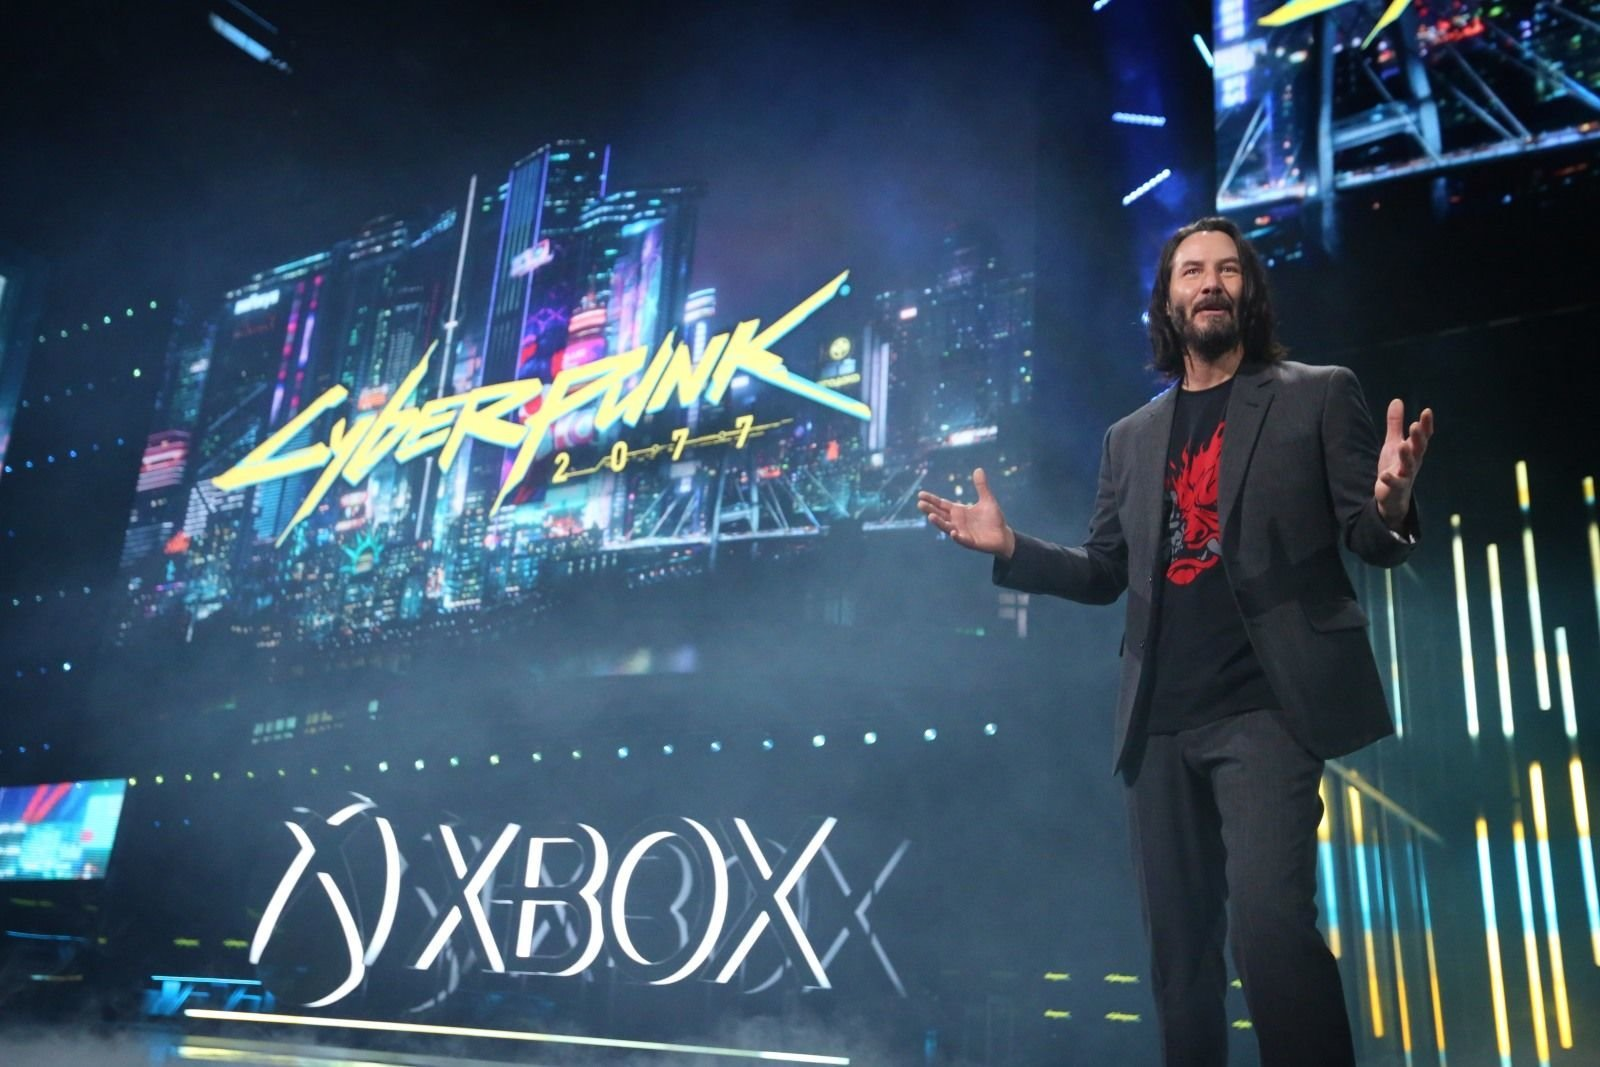 Reeves' appearance made many fans very happy (Photo: Casey Rodgers/Invision for Xbox/AP Images)